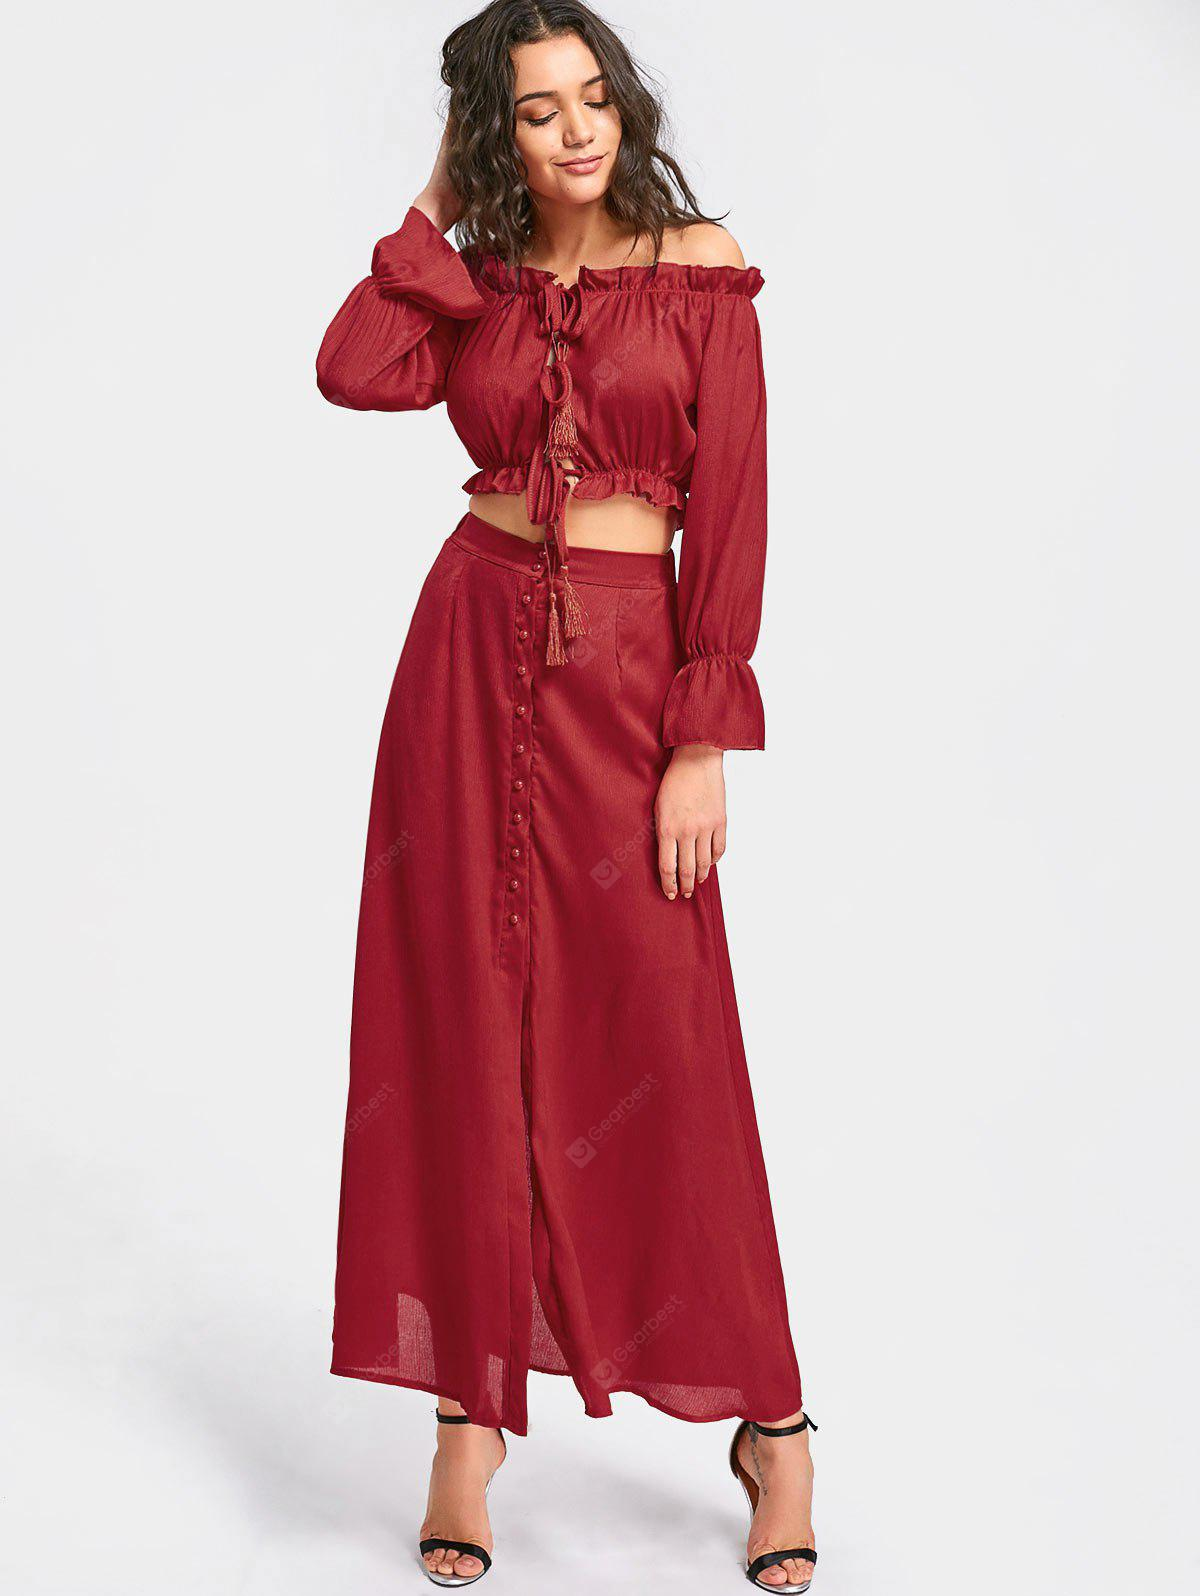 DEEP RED L Ruffled Crop Top with Maxi Skirt Set